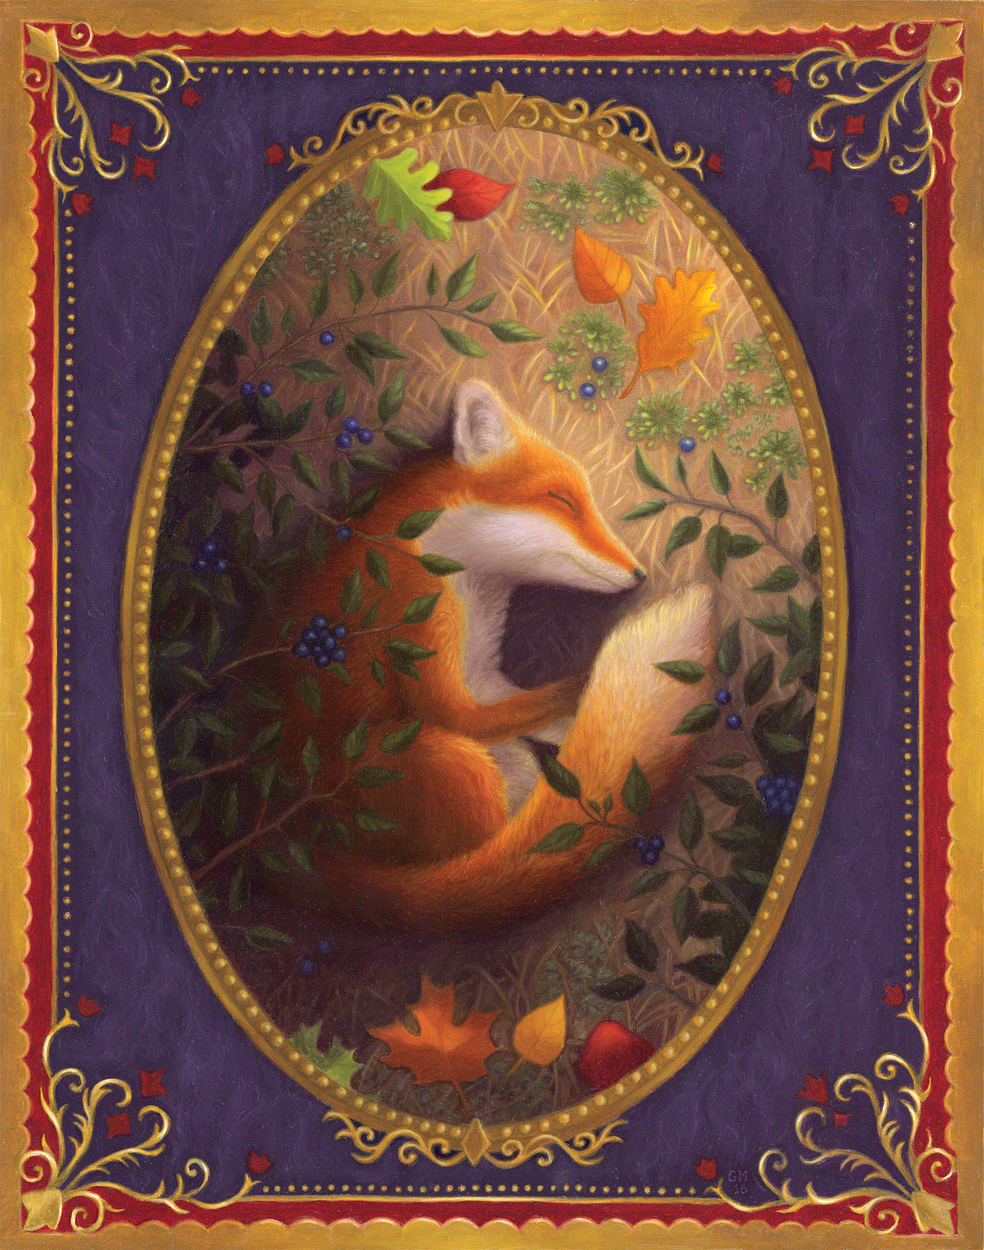 Sleeping Fox Artwork by Gina Matarazzo